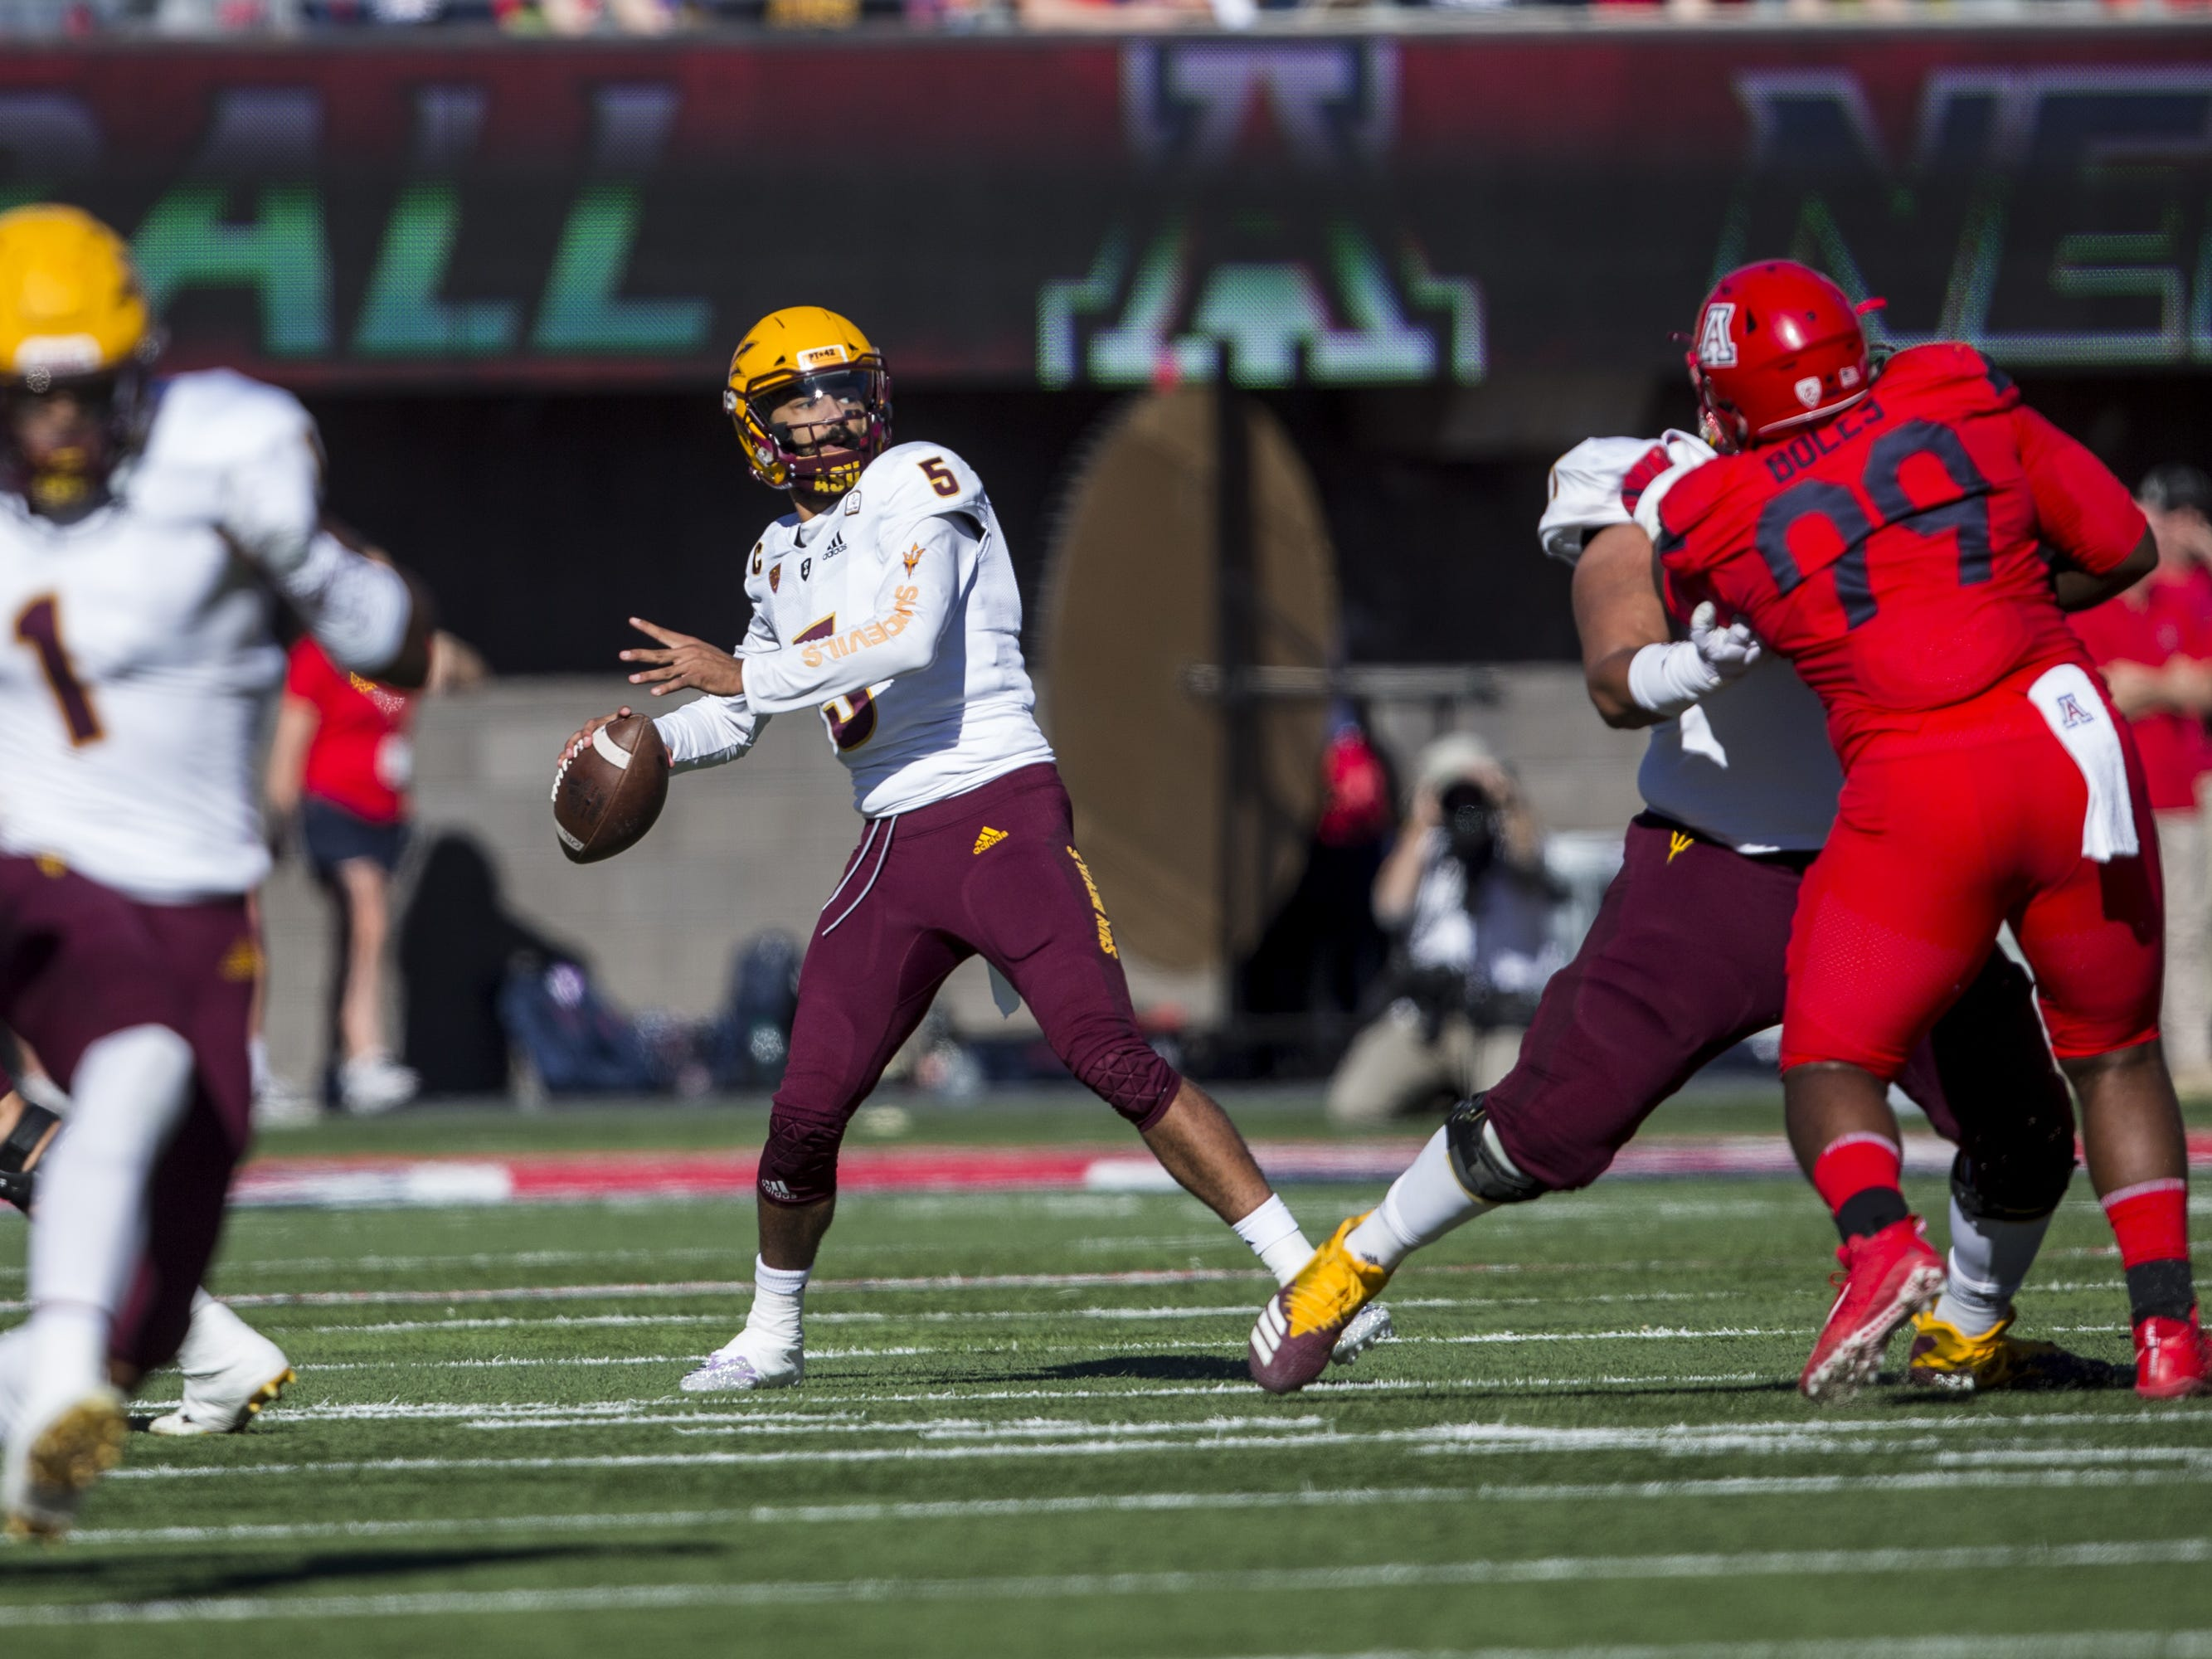 Arizona State's Manny Wilkins throws a touchdown to Brandon Aiyuk against Arizona during the first half of the Territorial Cup on Saturday, Nov. 24, 2018, at Arizona Stadium in Tucson, Ariz.